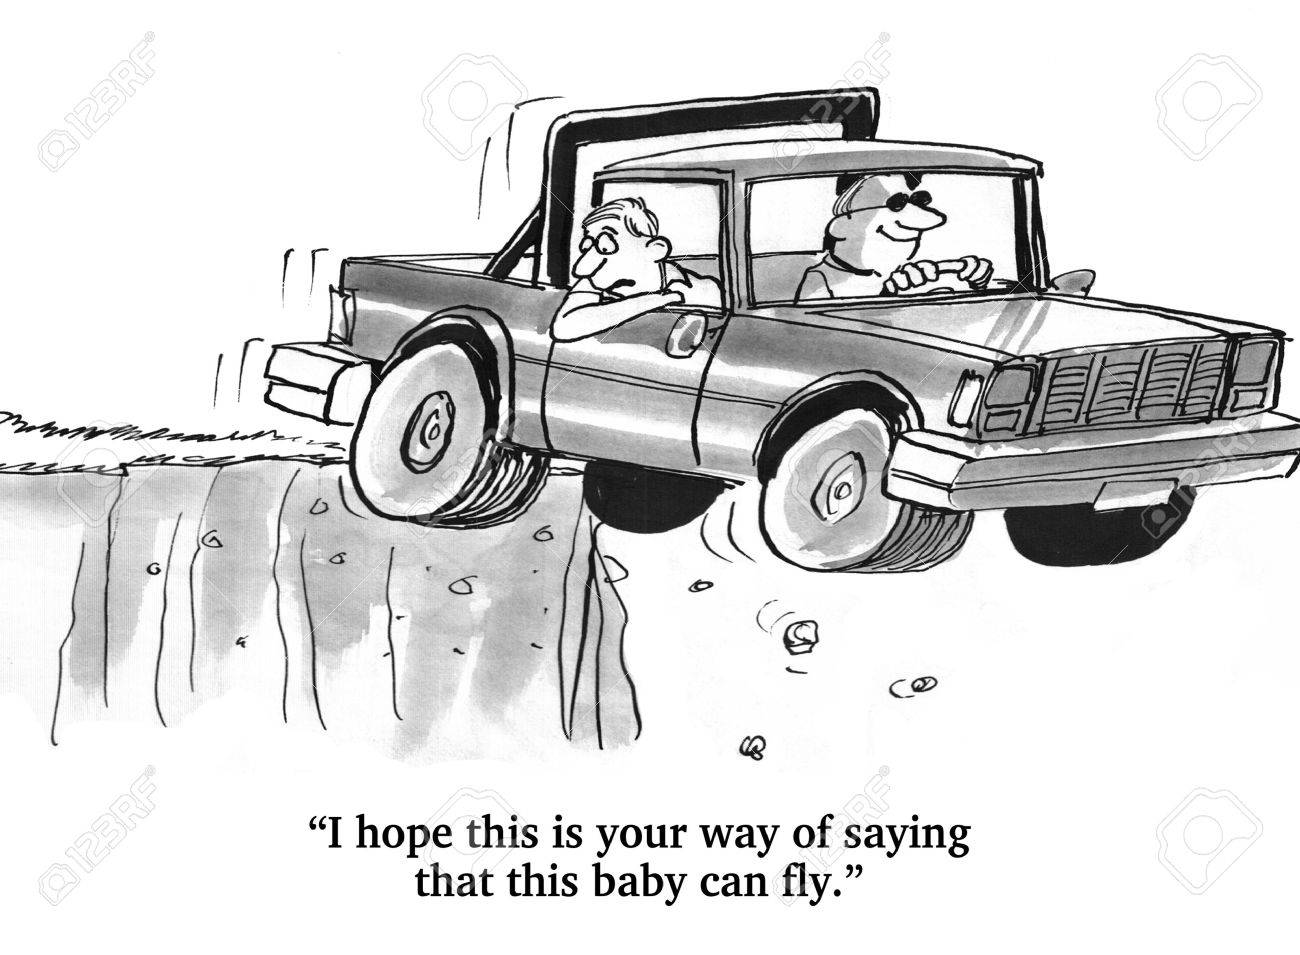 Hope This Truck Can Fly - 51004414